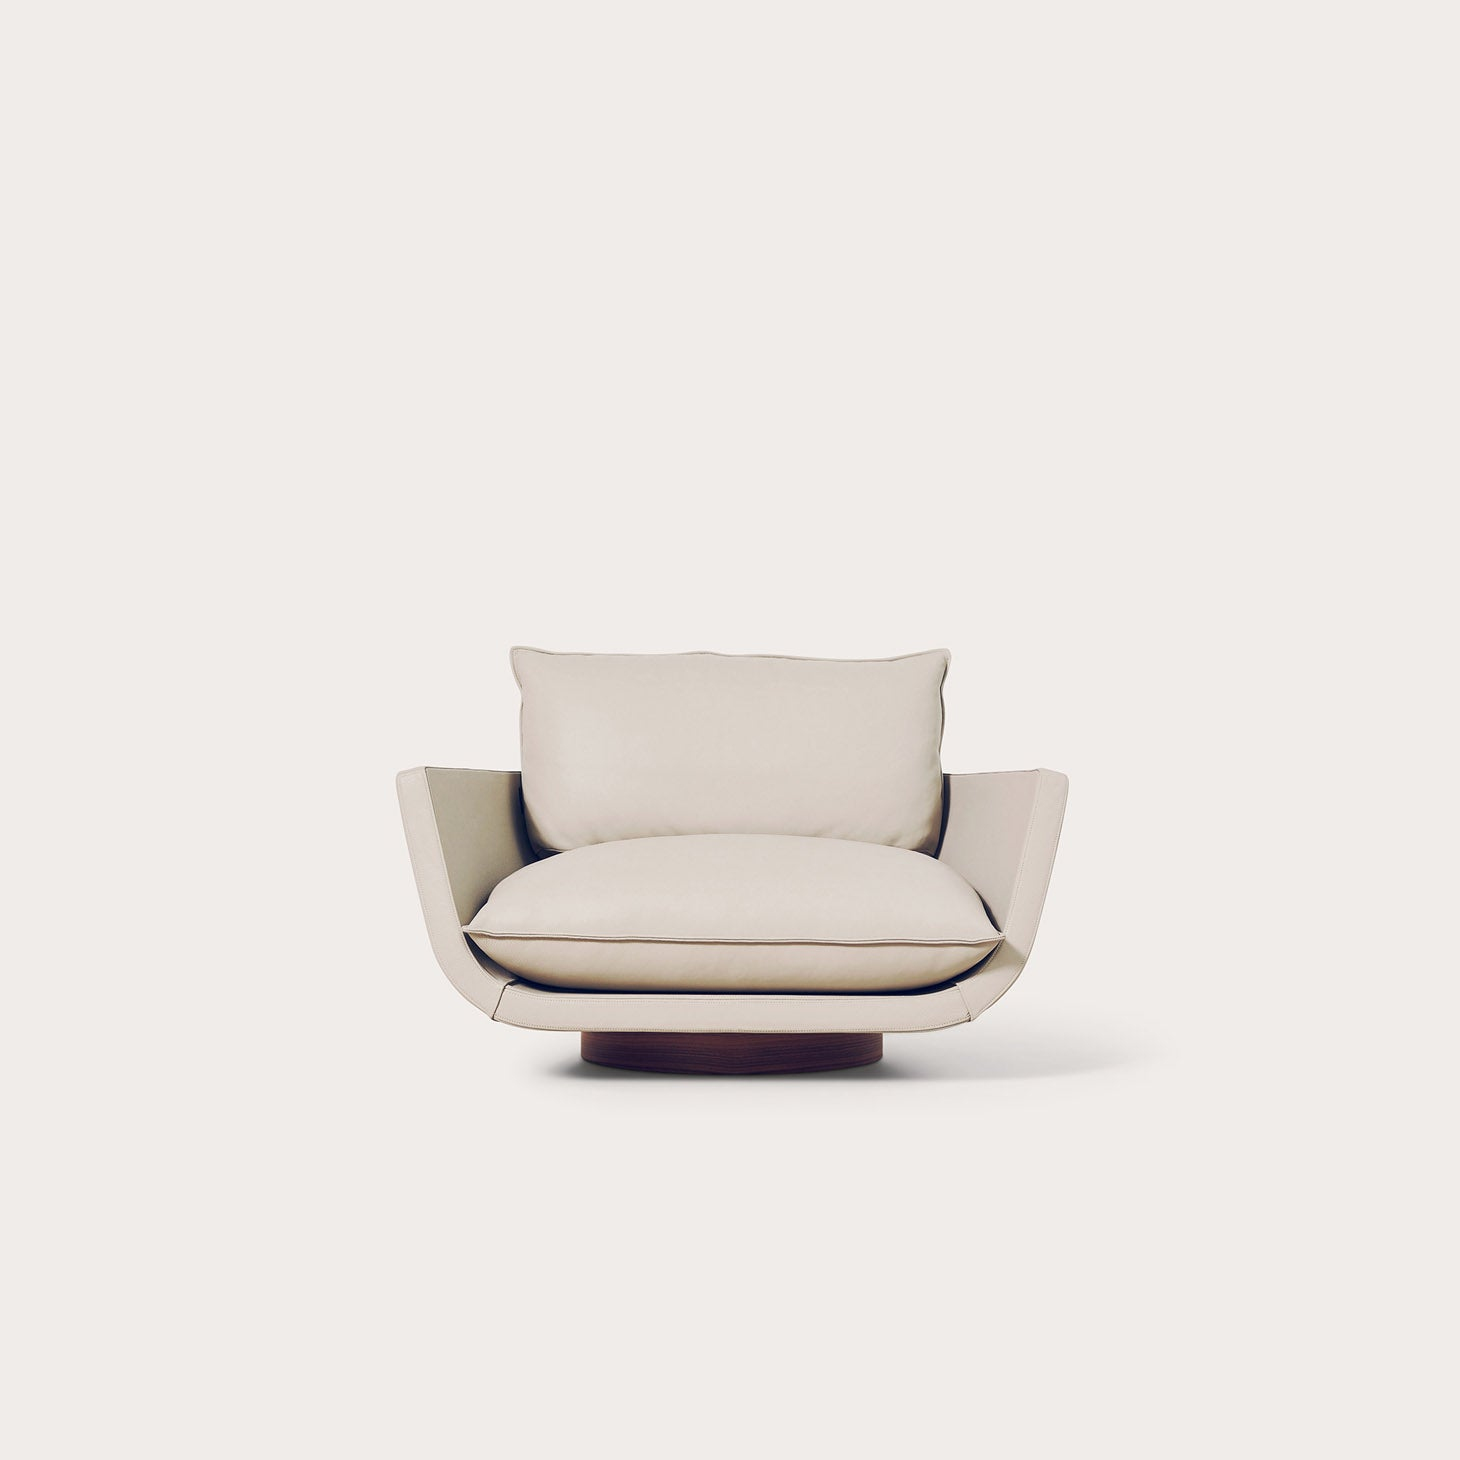 Rua Ipanema Seating Yabu Pushelberg Designer Furniture Sku: 800-240-10030